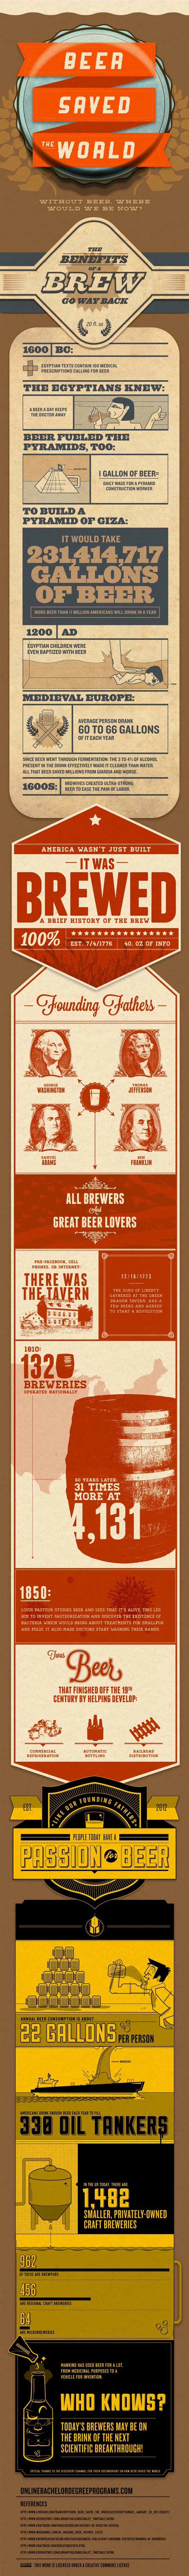 How Beer Saved the World infographic